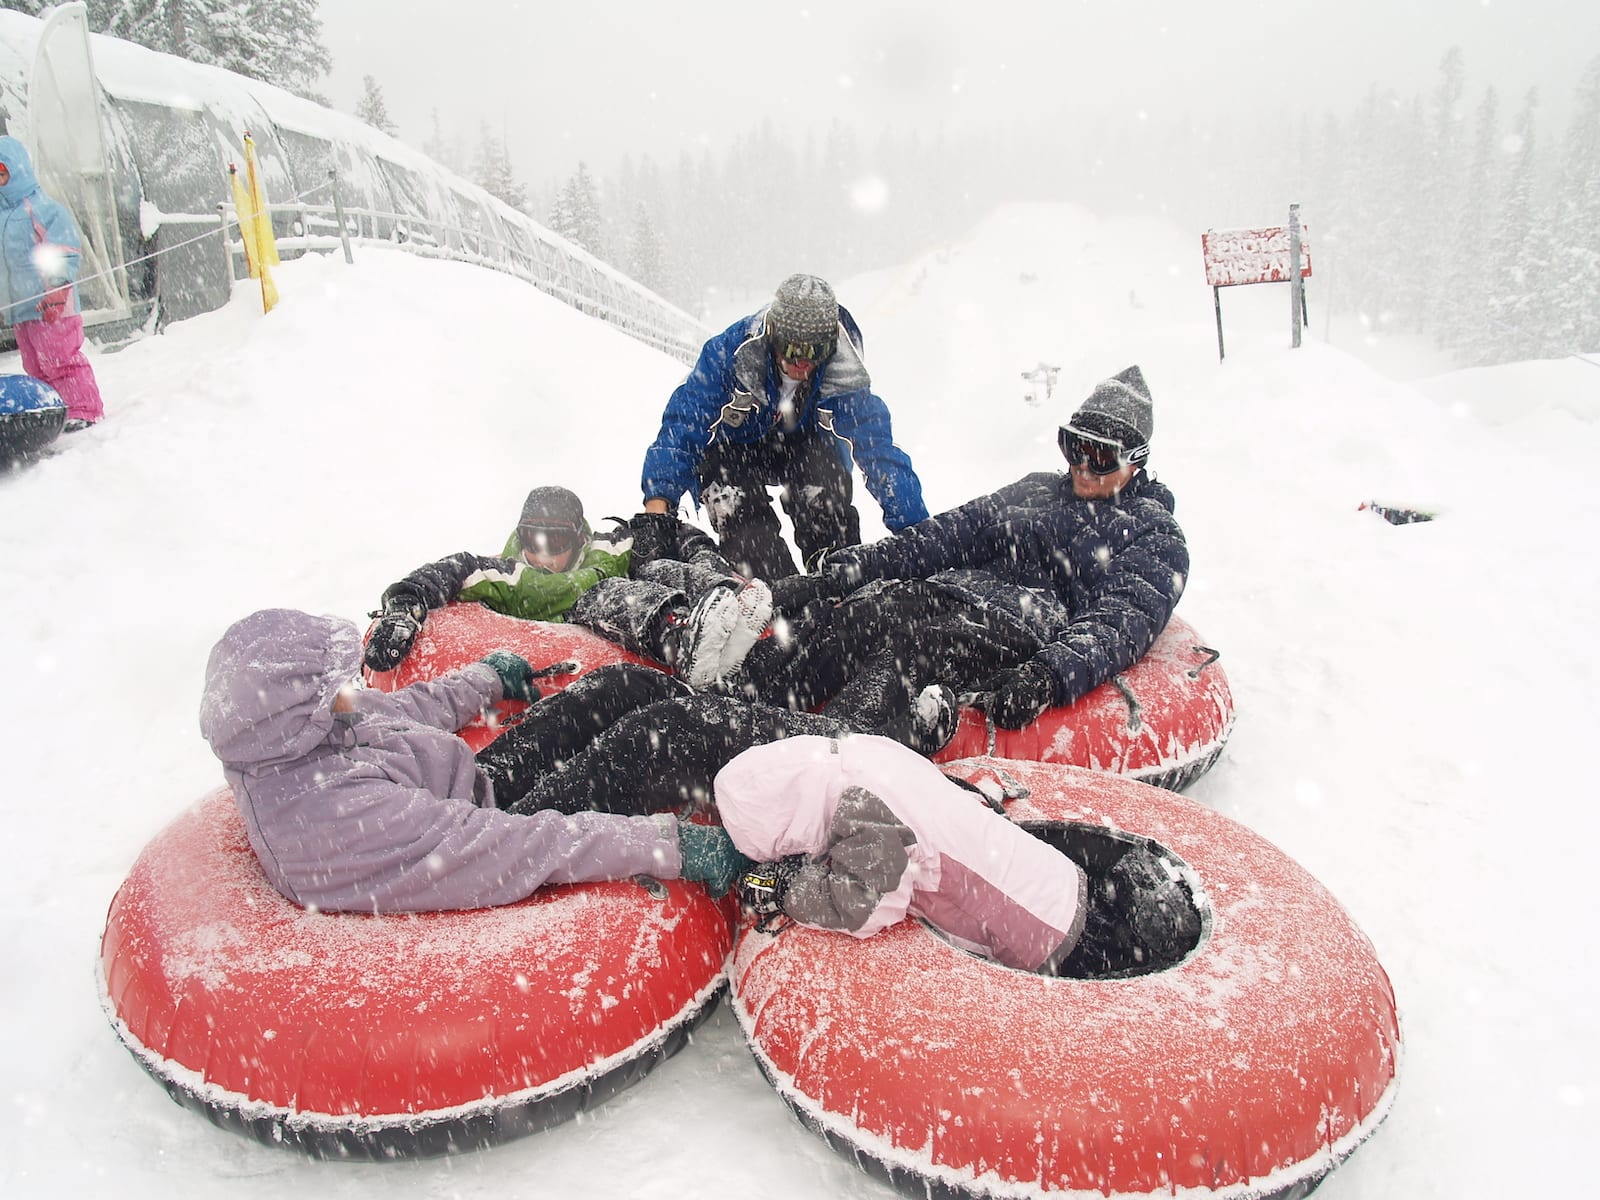 Keystone Resort Snow Tubing Hill Group